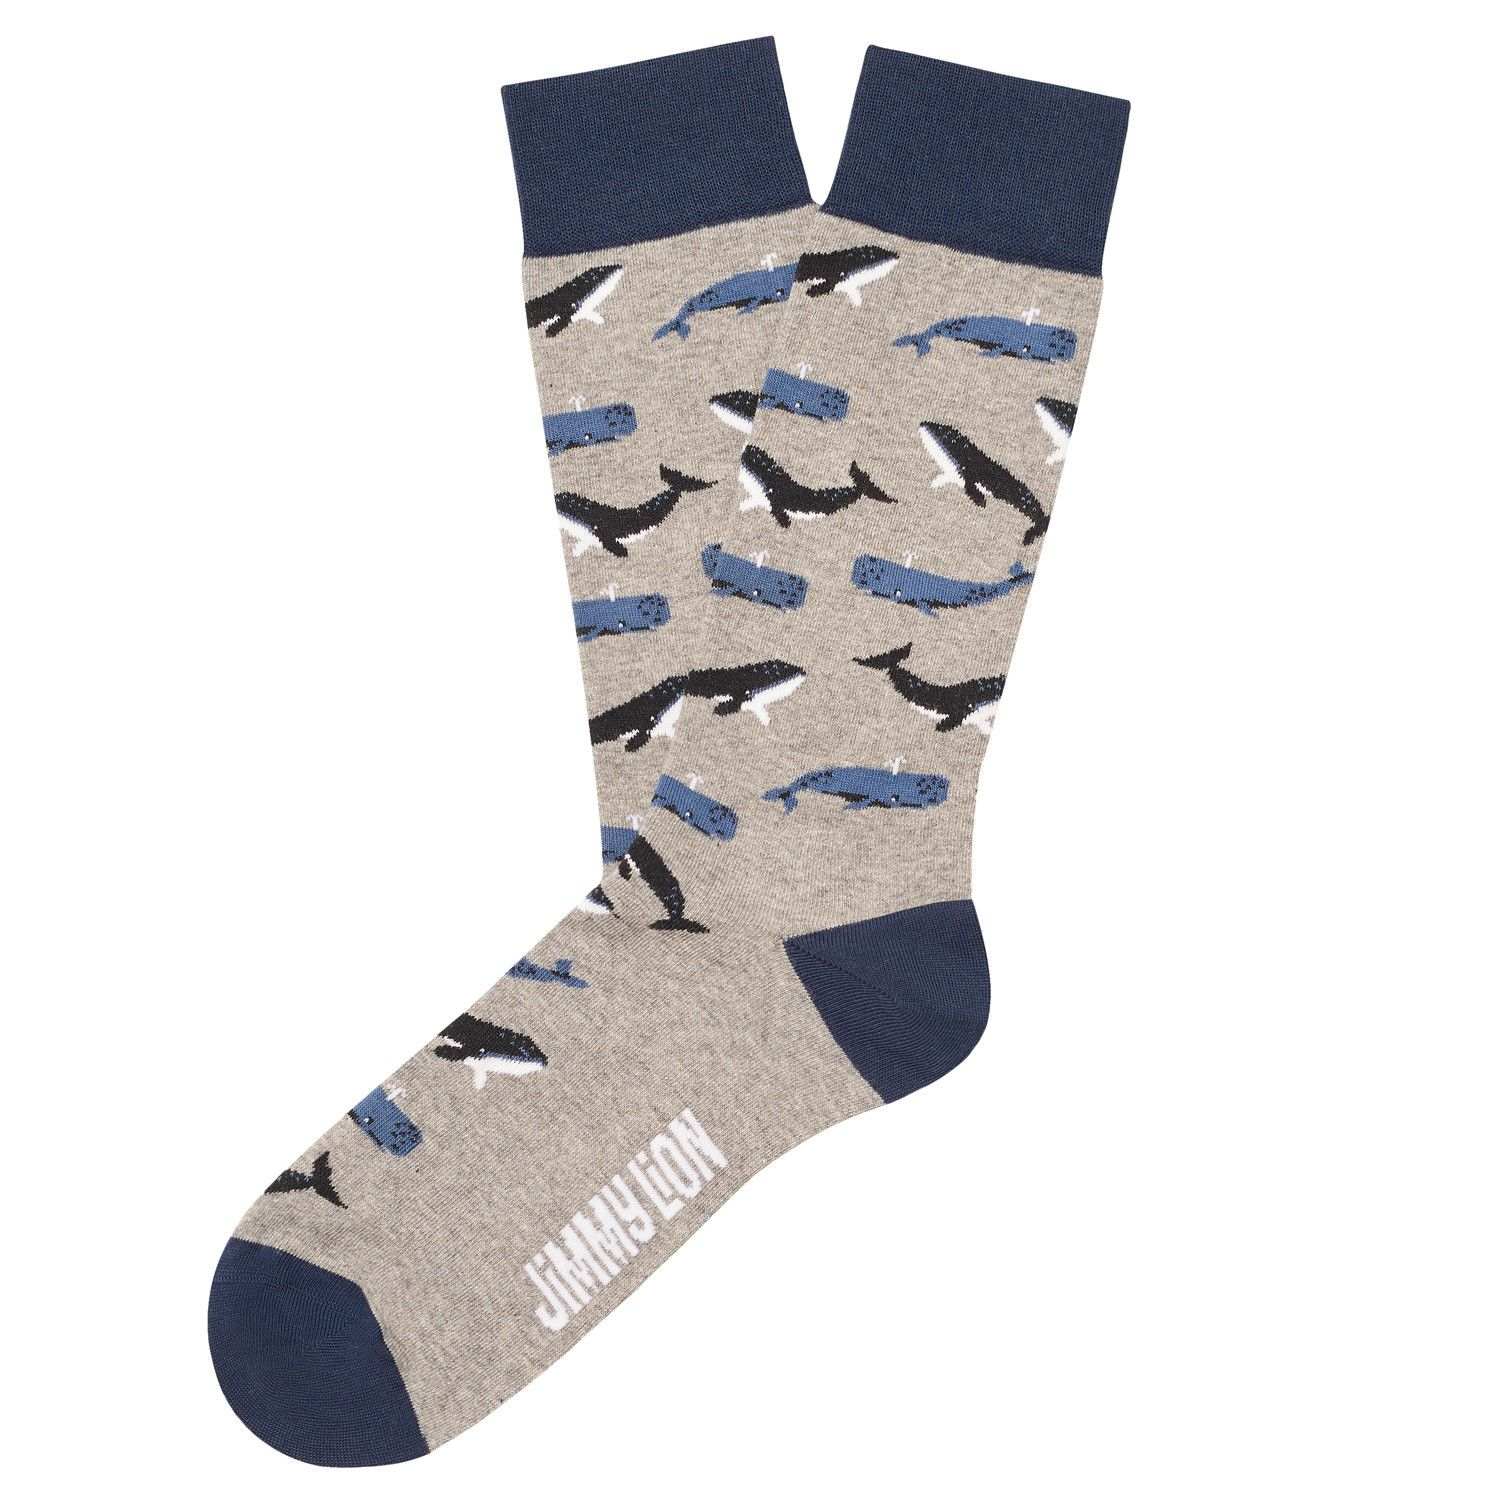 blue and grey whale socks by Jimmy Lion. design, whales